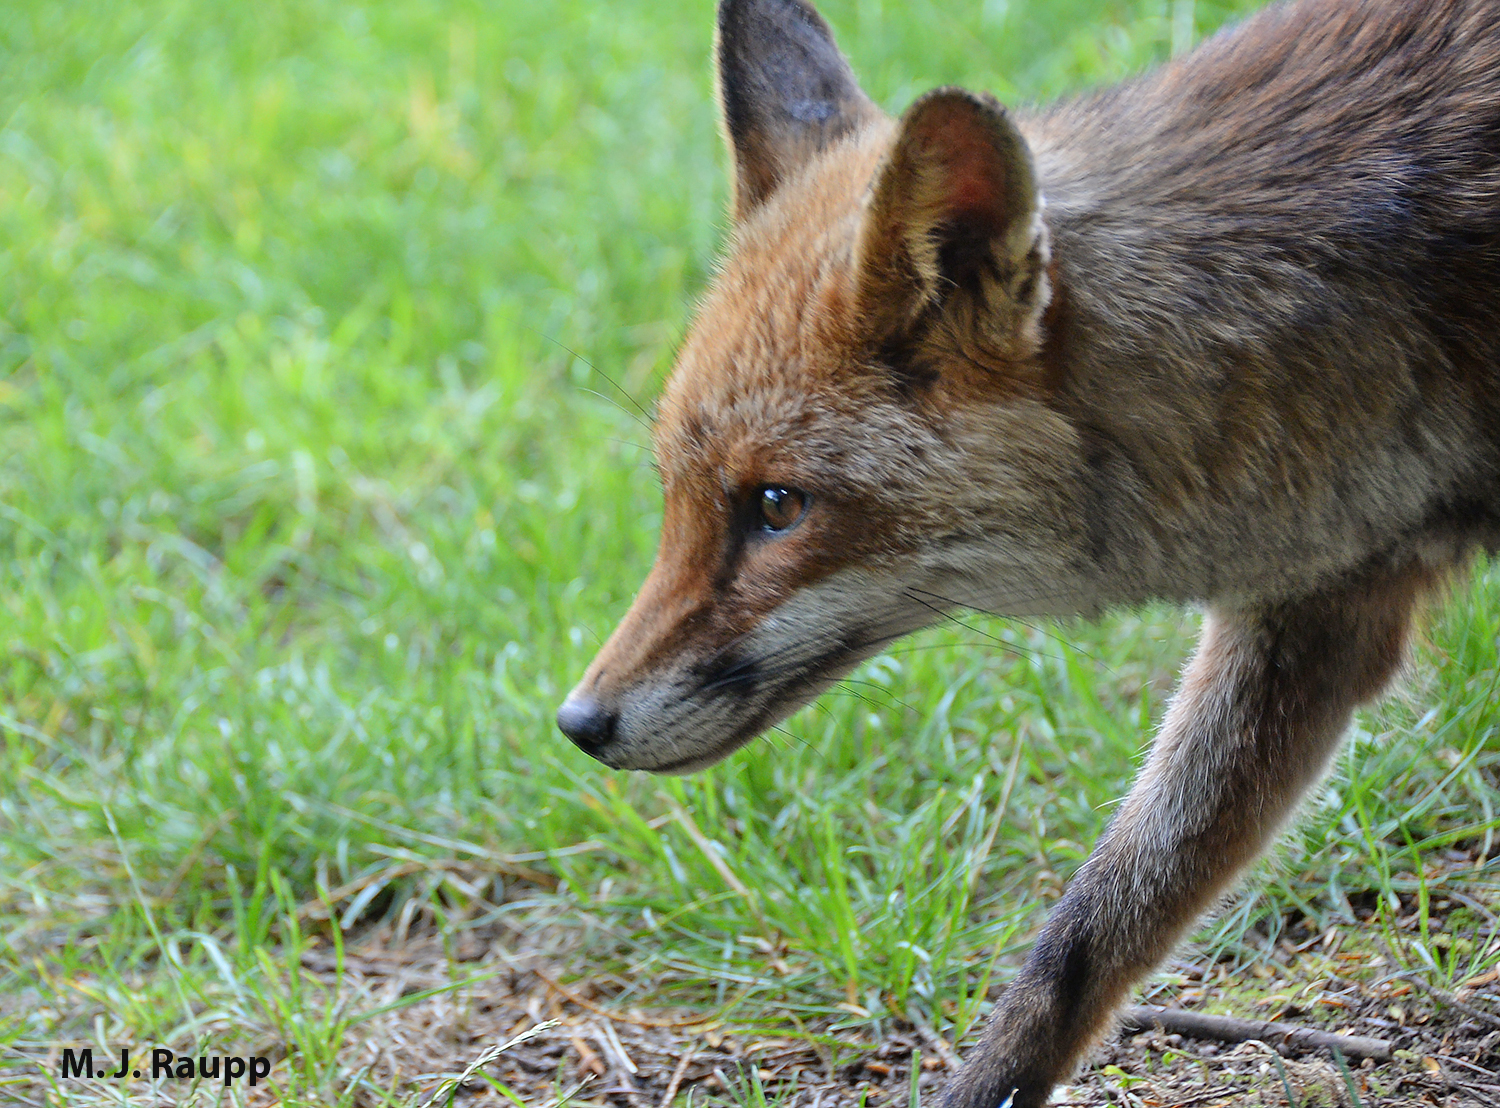 Handsome red foxes will deposit the remains of small mammals like shrews in piles of scat.